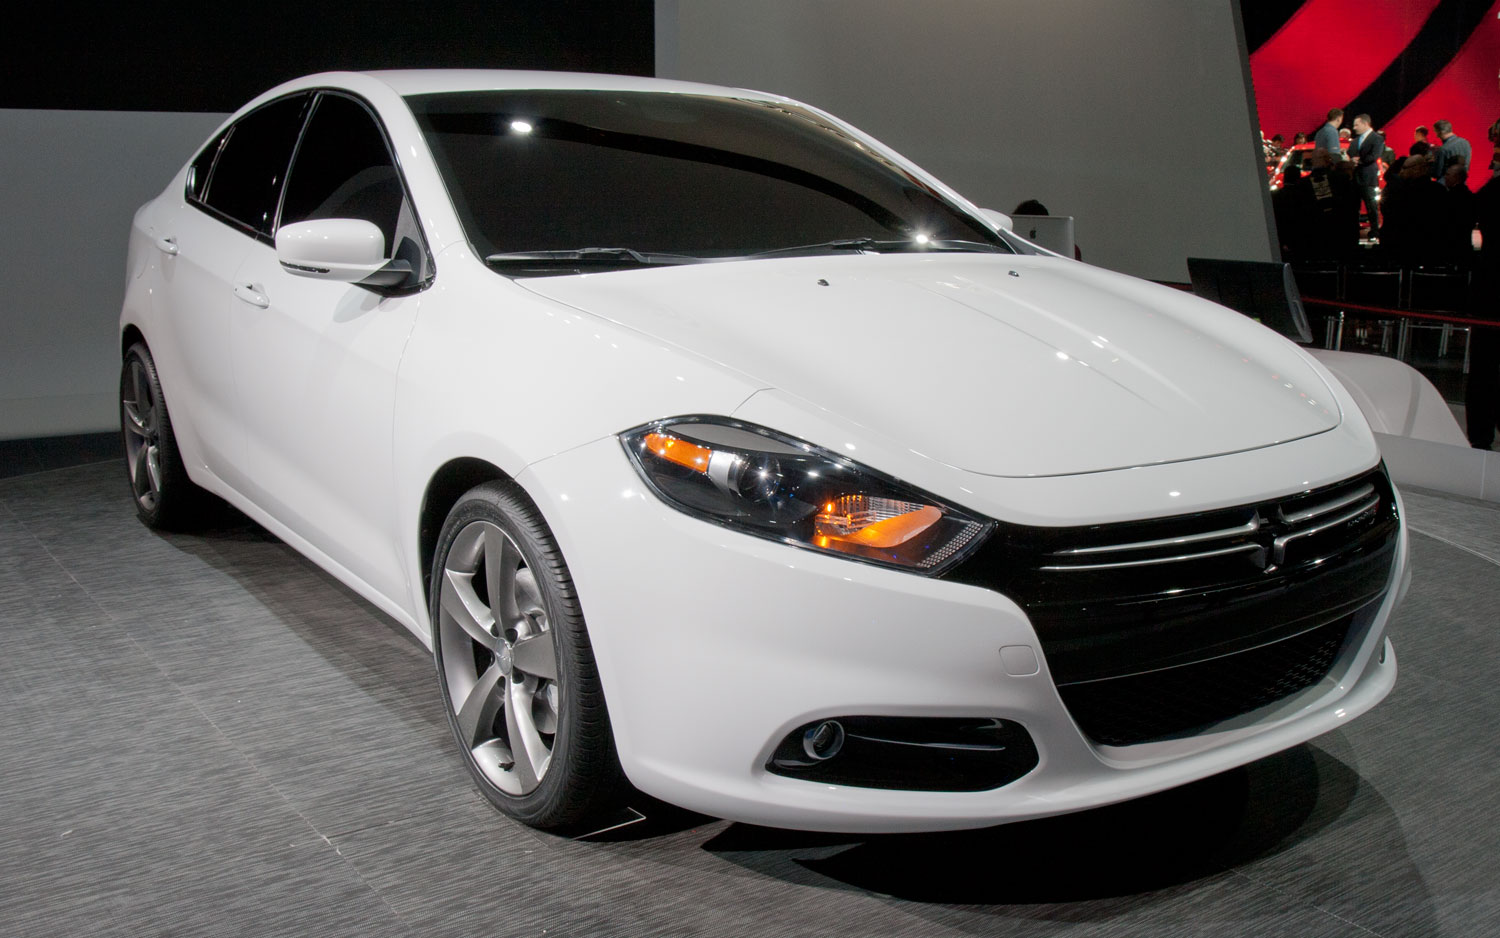 2013 Dodge Dart RT Front Three Quarters View11